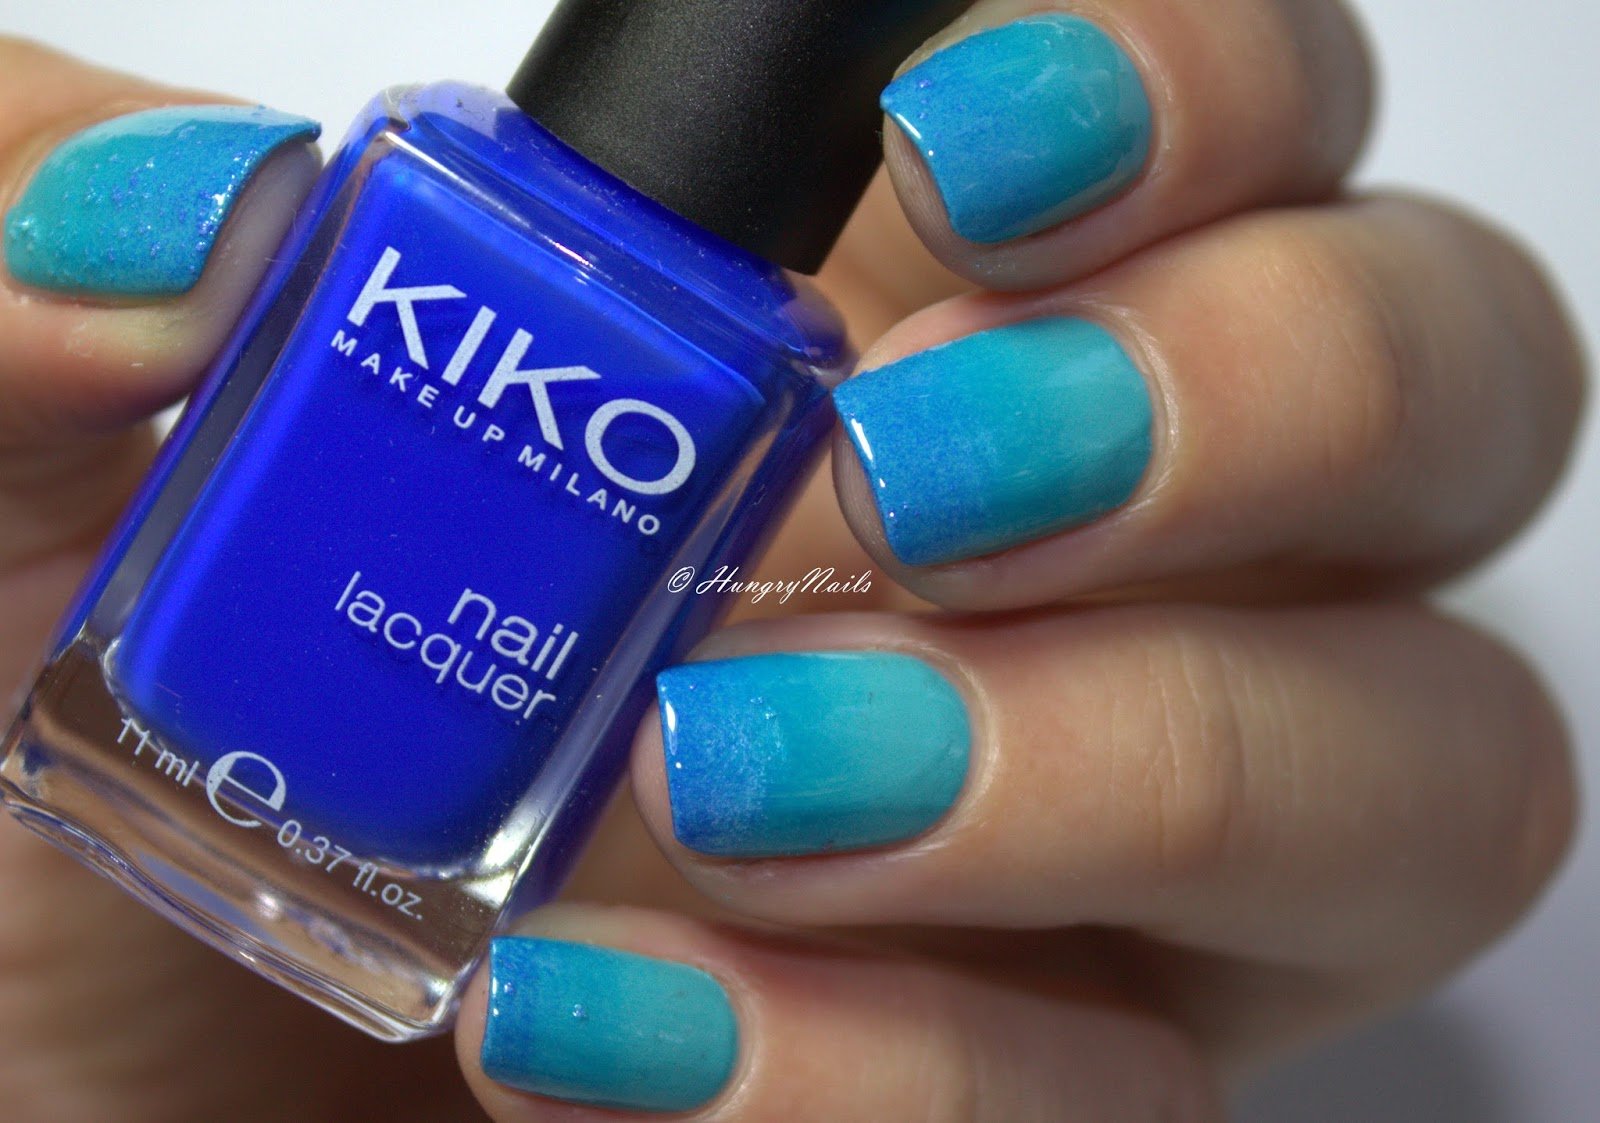 http://hungrynails.blogspot.de/2016/09/blue-friday-sepzial-gradient-nails.html